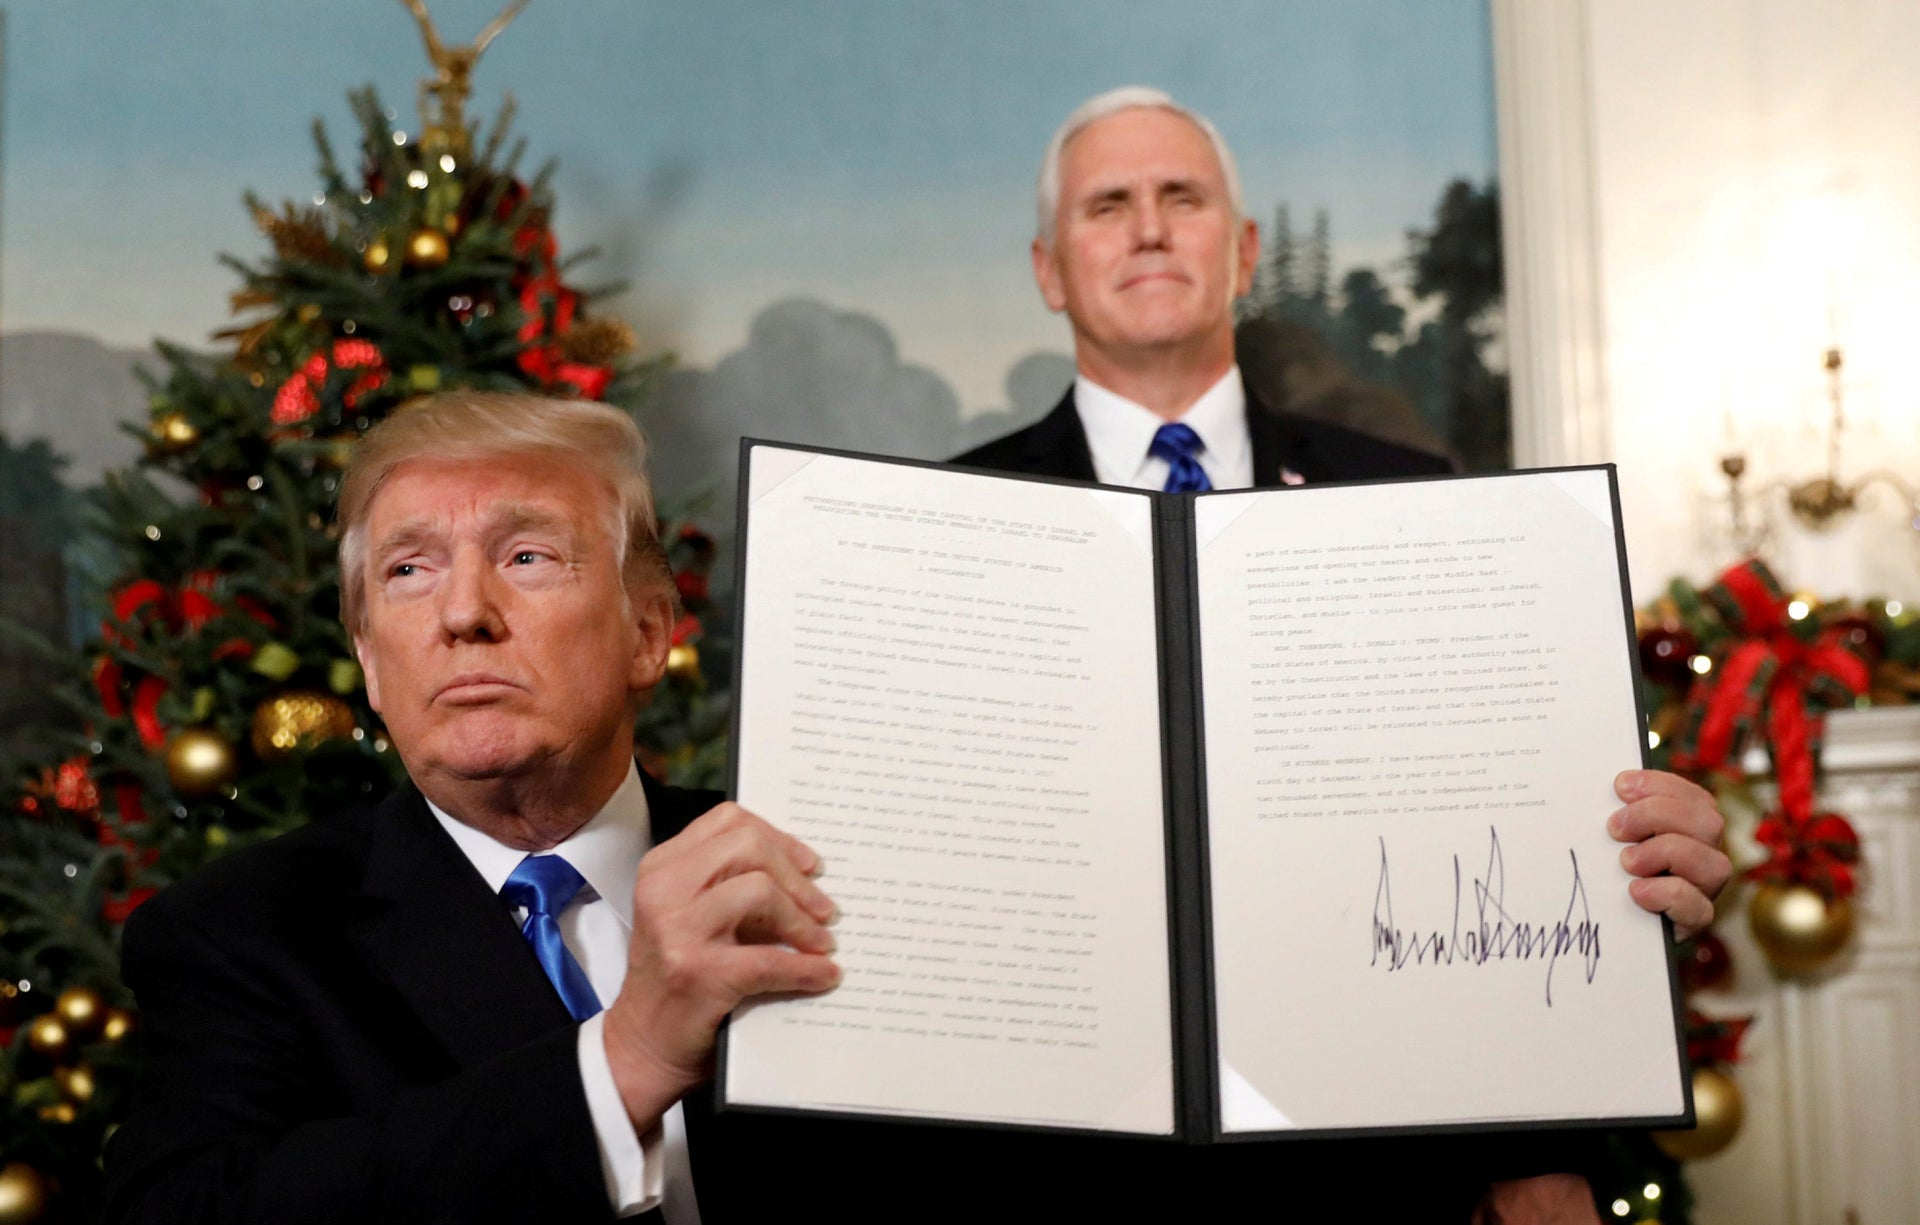 U.S. Vice President Mike Pence stands behind as U.S. President Donald Trump shows the proclamation he signed that the U.S. recognizes Jerusalem as the capital of Israel, December 6, 2017